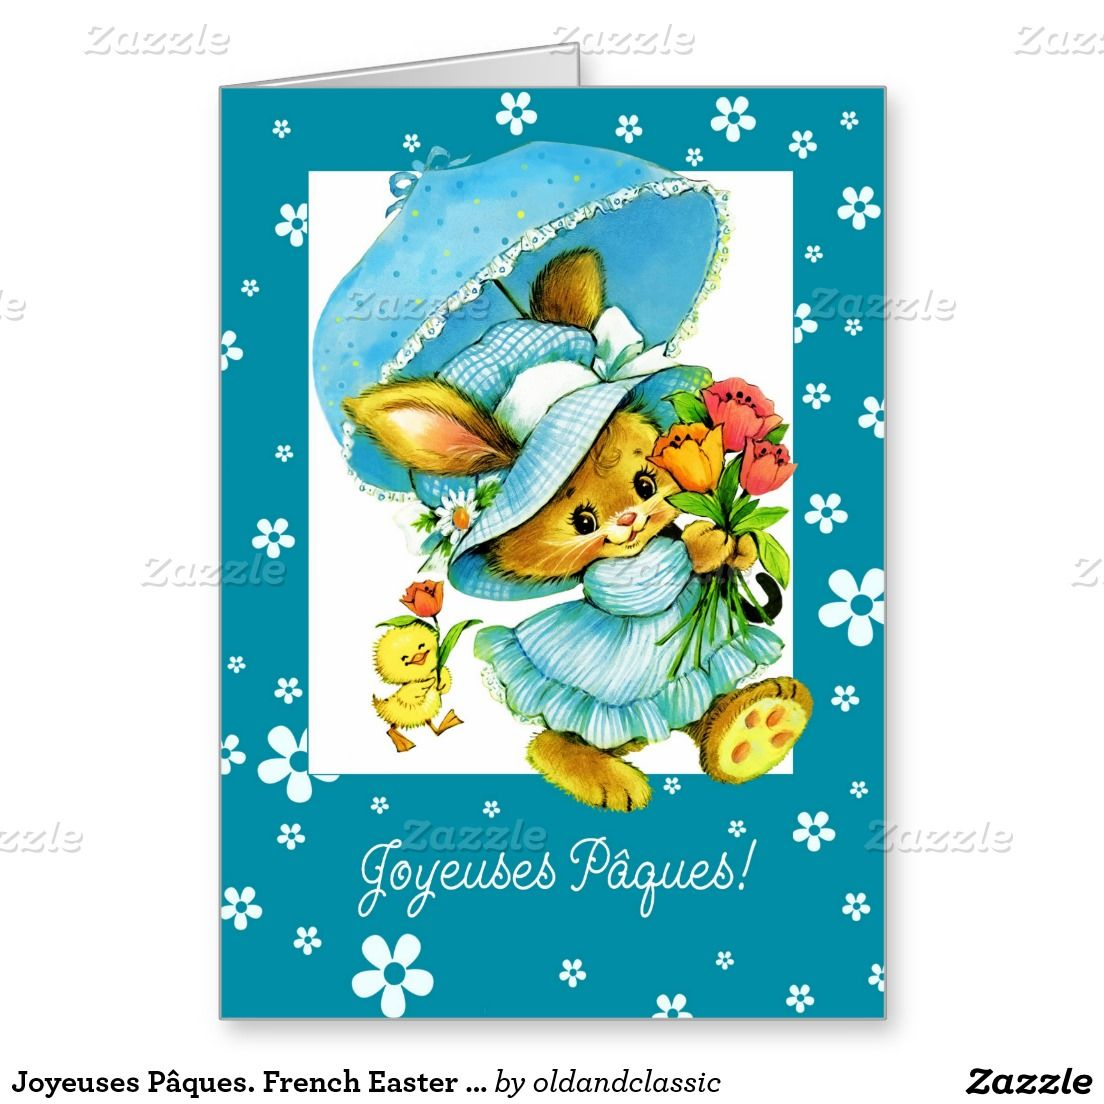 Joyeuses Pâques. Easter Greeting Card in French with retro Easter Bunny and Chick postcard image. Matching cards in various languages , postage stamps and other products available in the Holidays / Easter Category of the oldandclassic store at zazzle.com